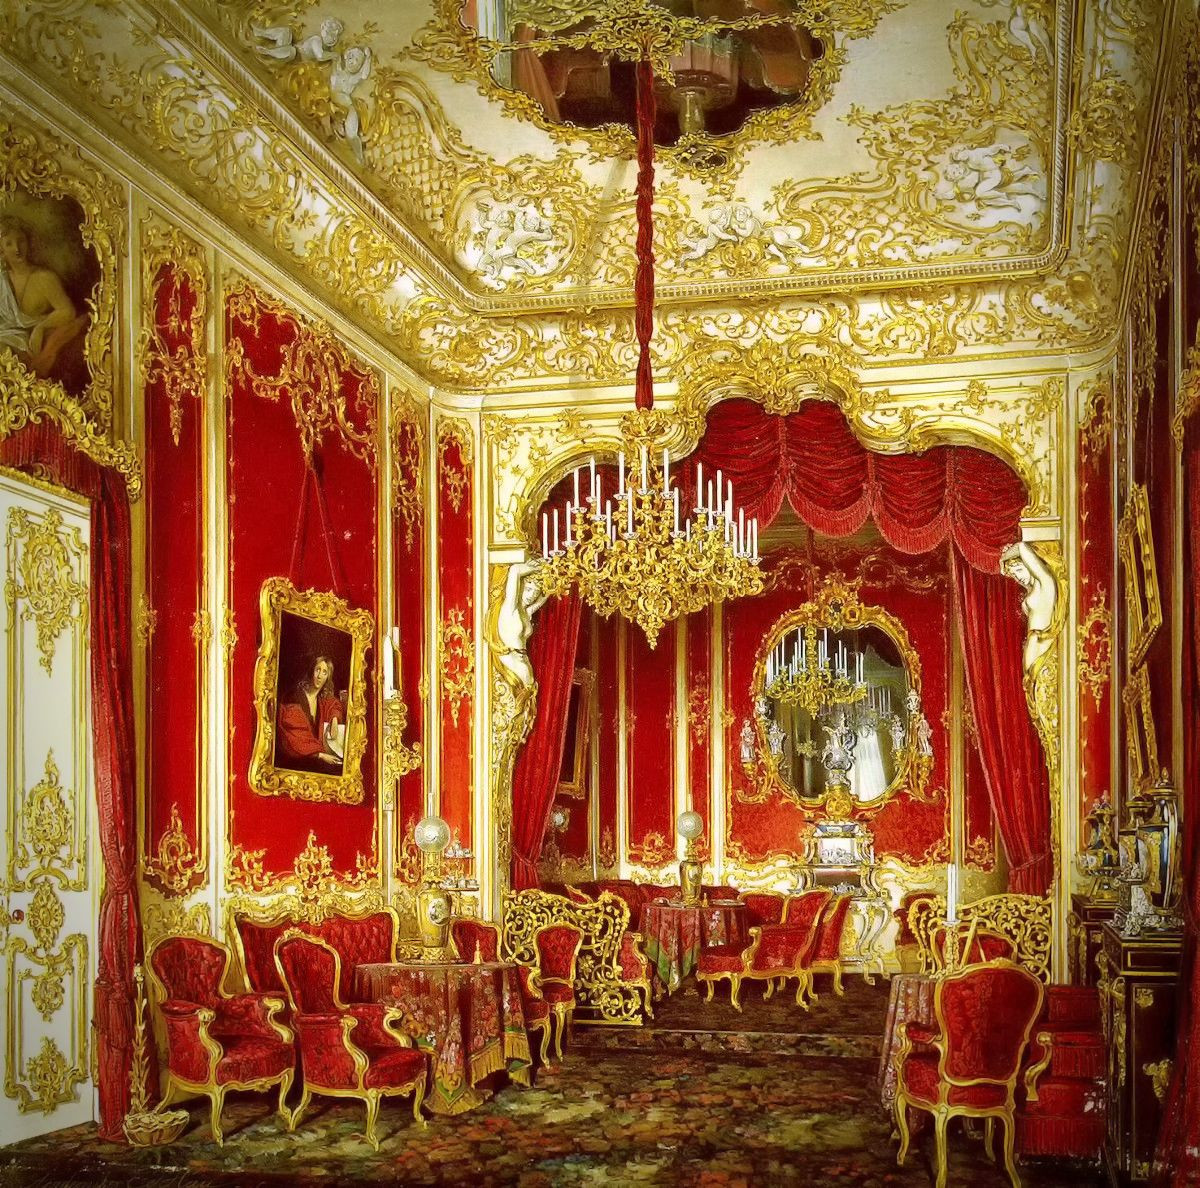 The Boudoir of Empress Maria Alexandrovna, 1861